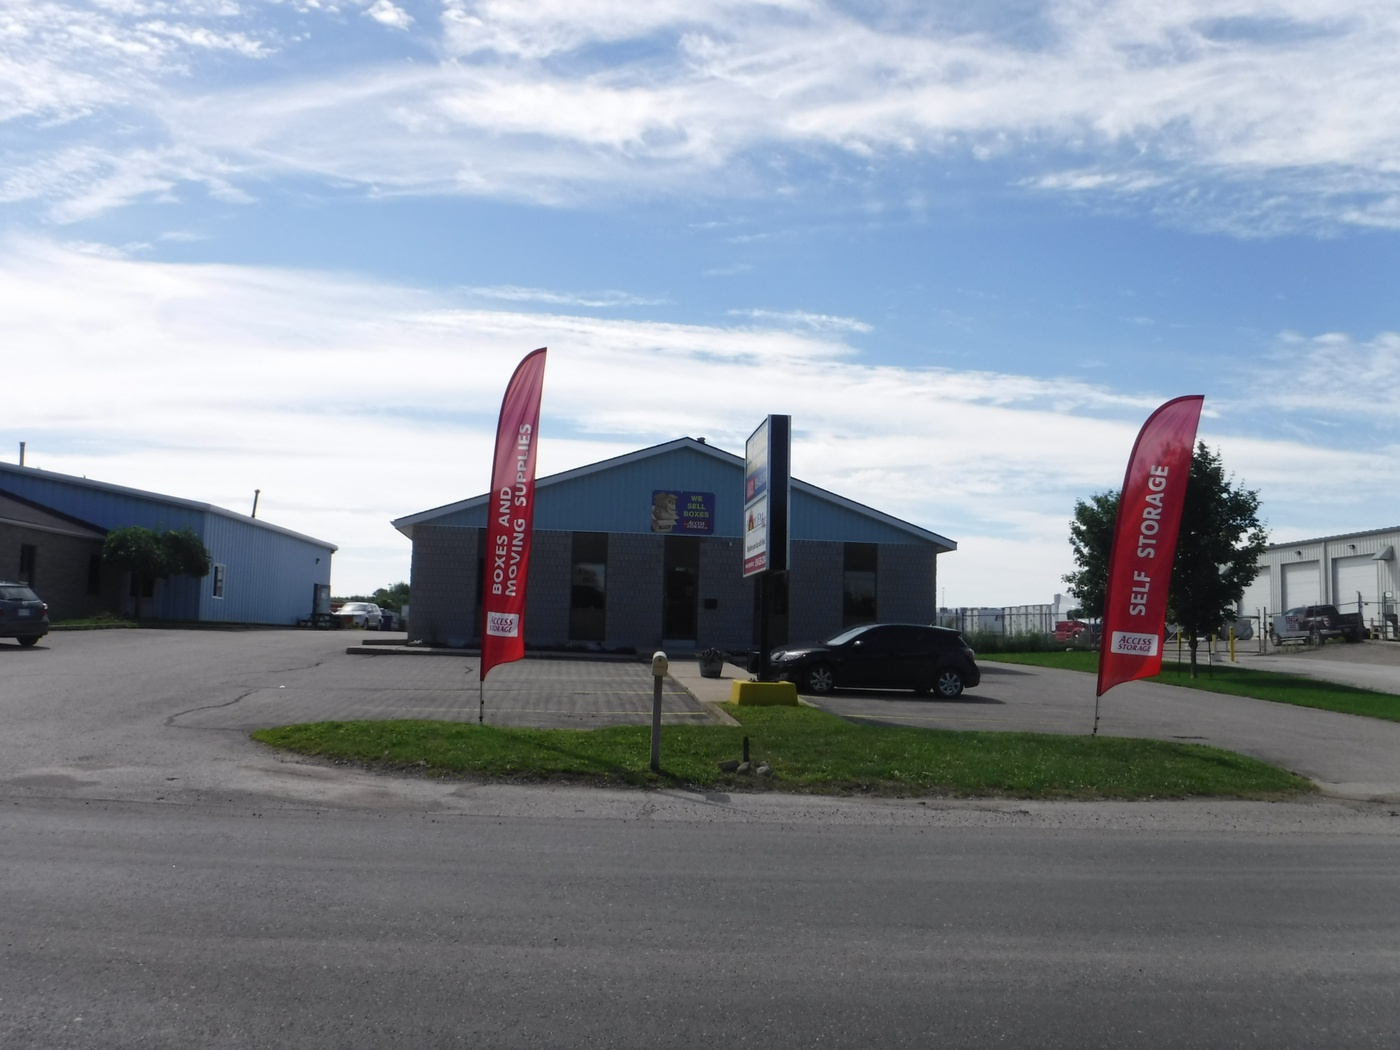 Access Storage - Woodstock South - Woodstock, ON N4S 7W3 - (226)271-1222   ShowMeLocal.com